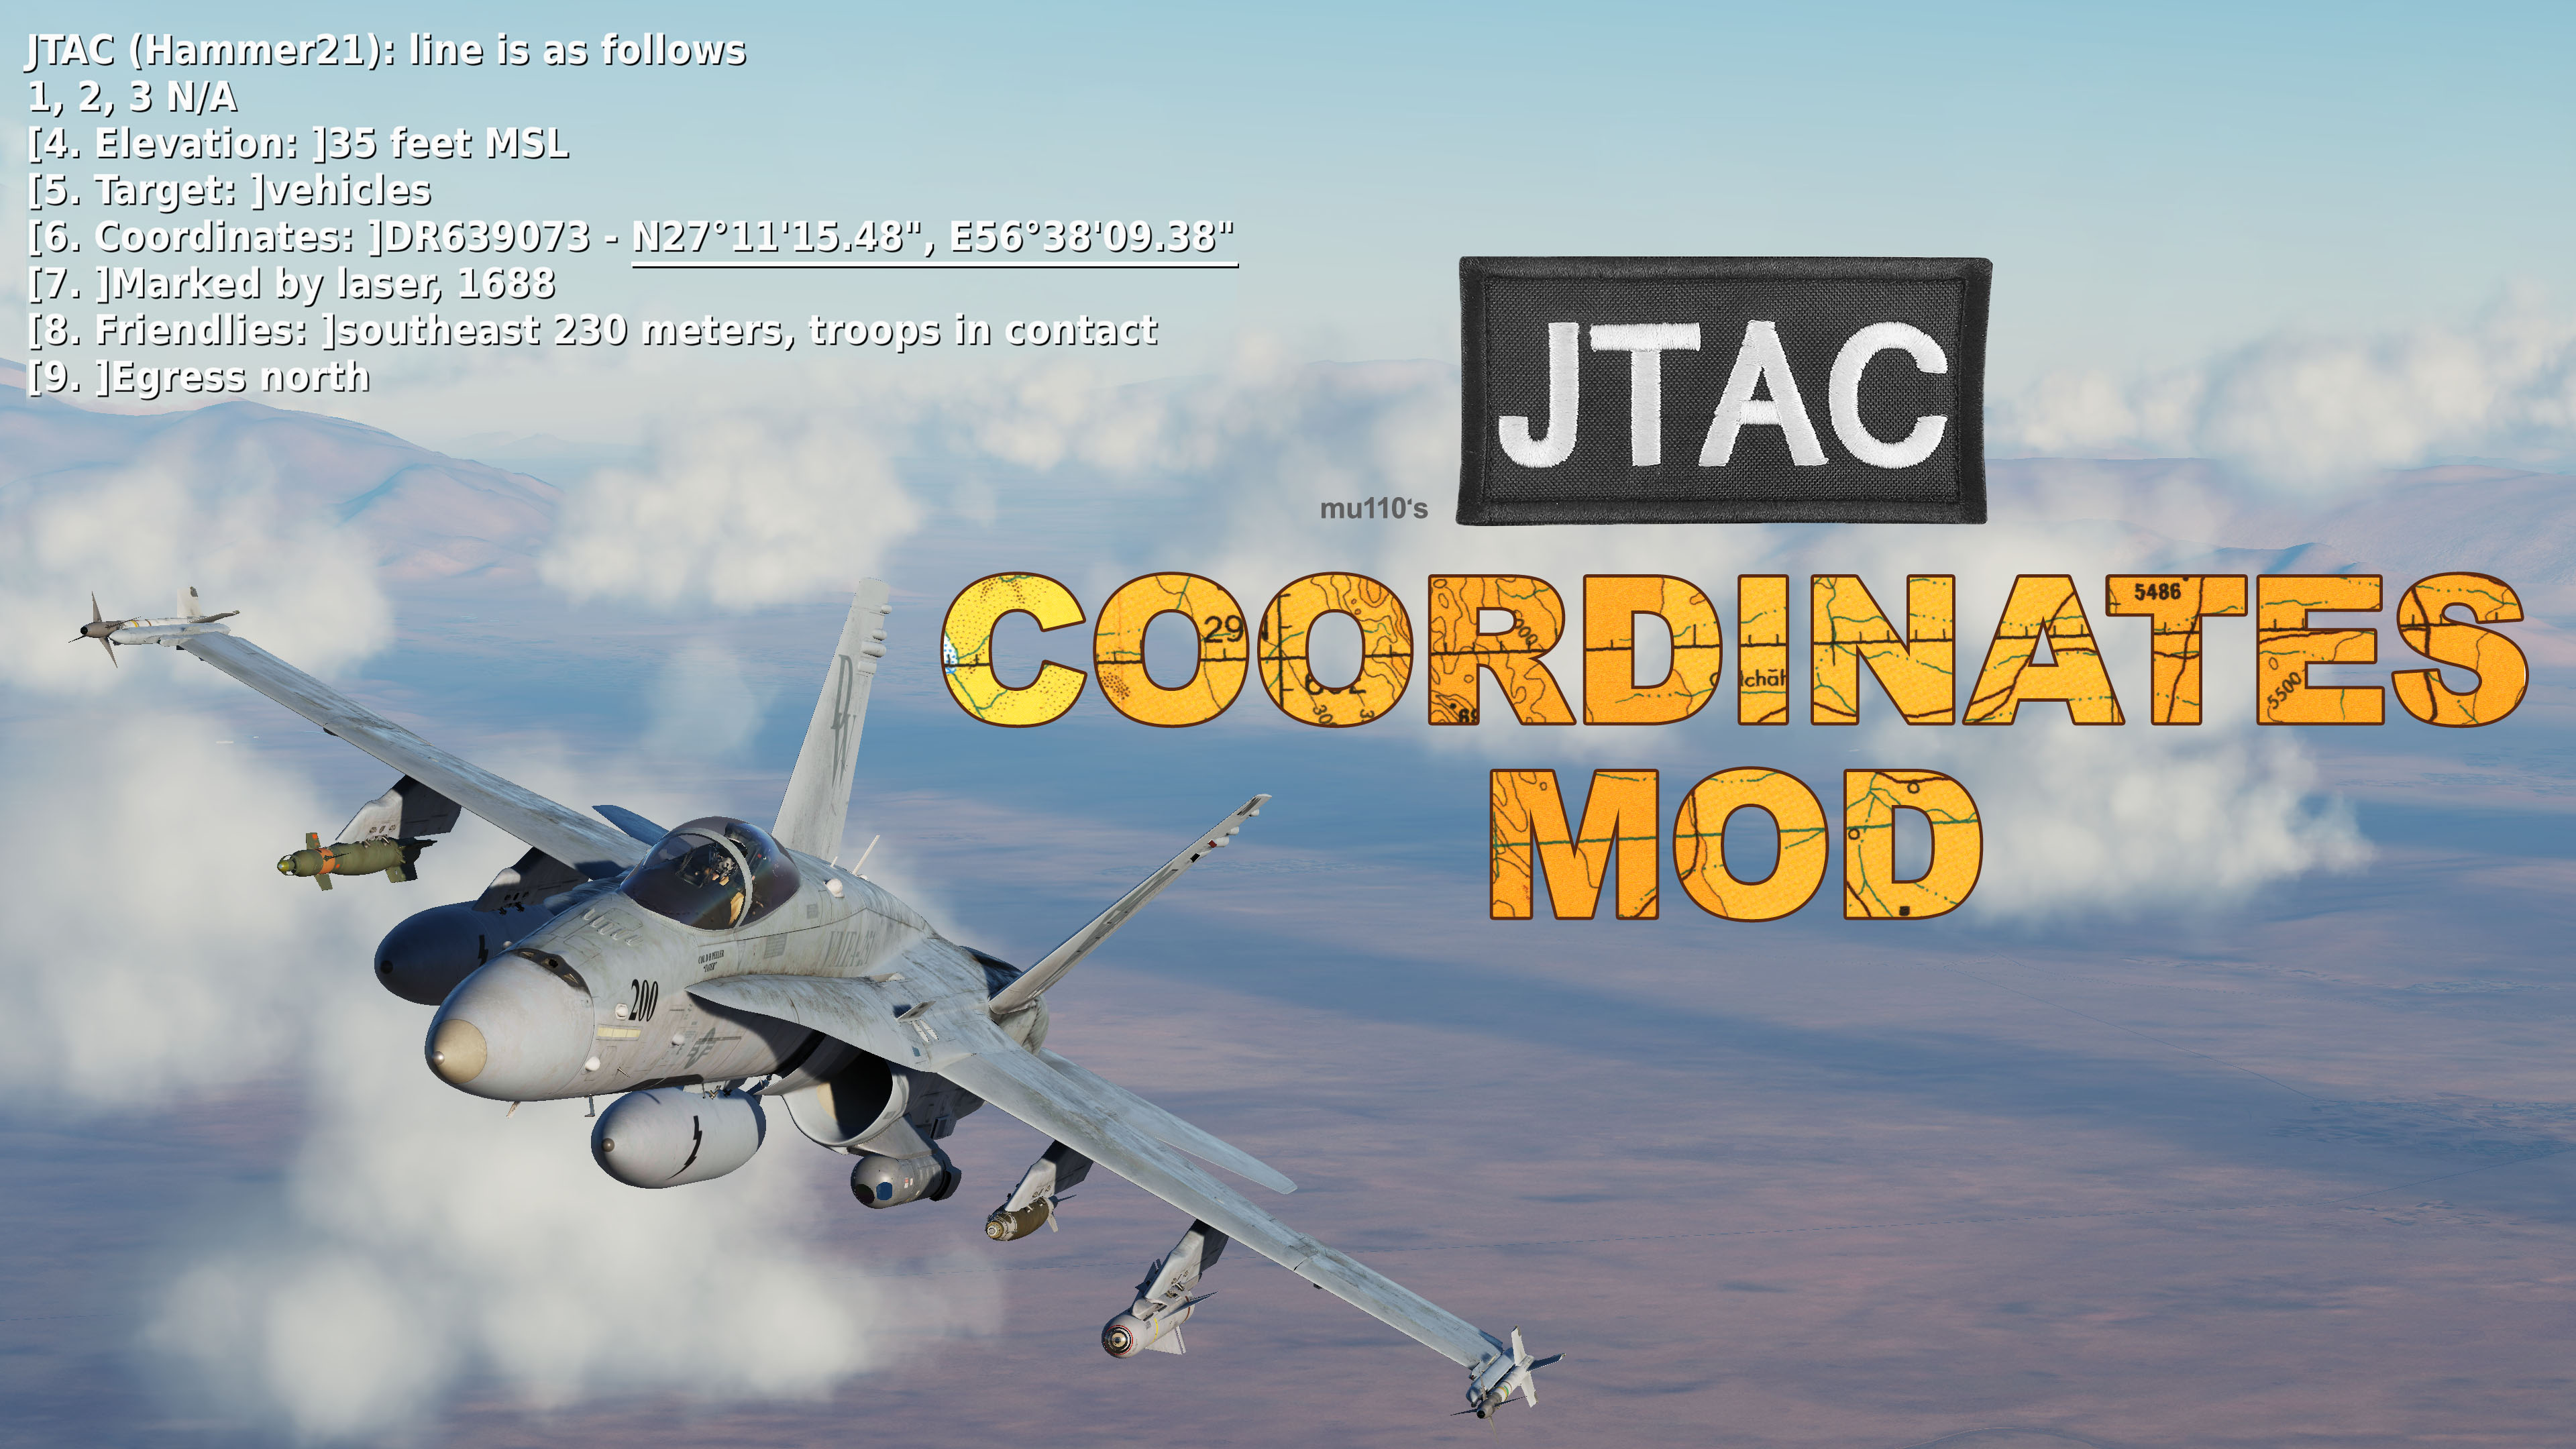 JTAC Coordinates in Lat/Long [UPDATED for 2.7.0]